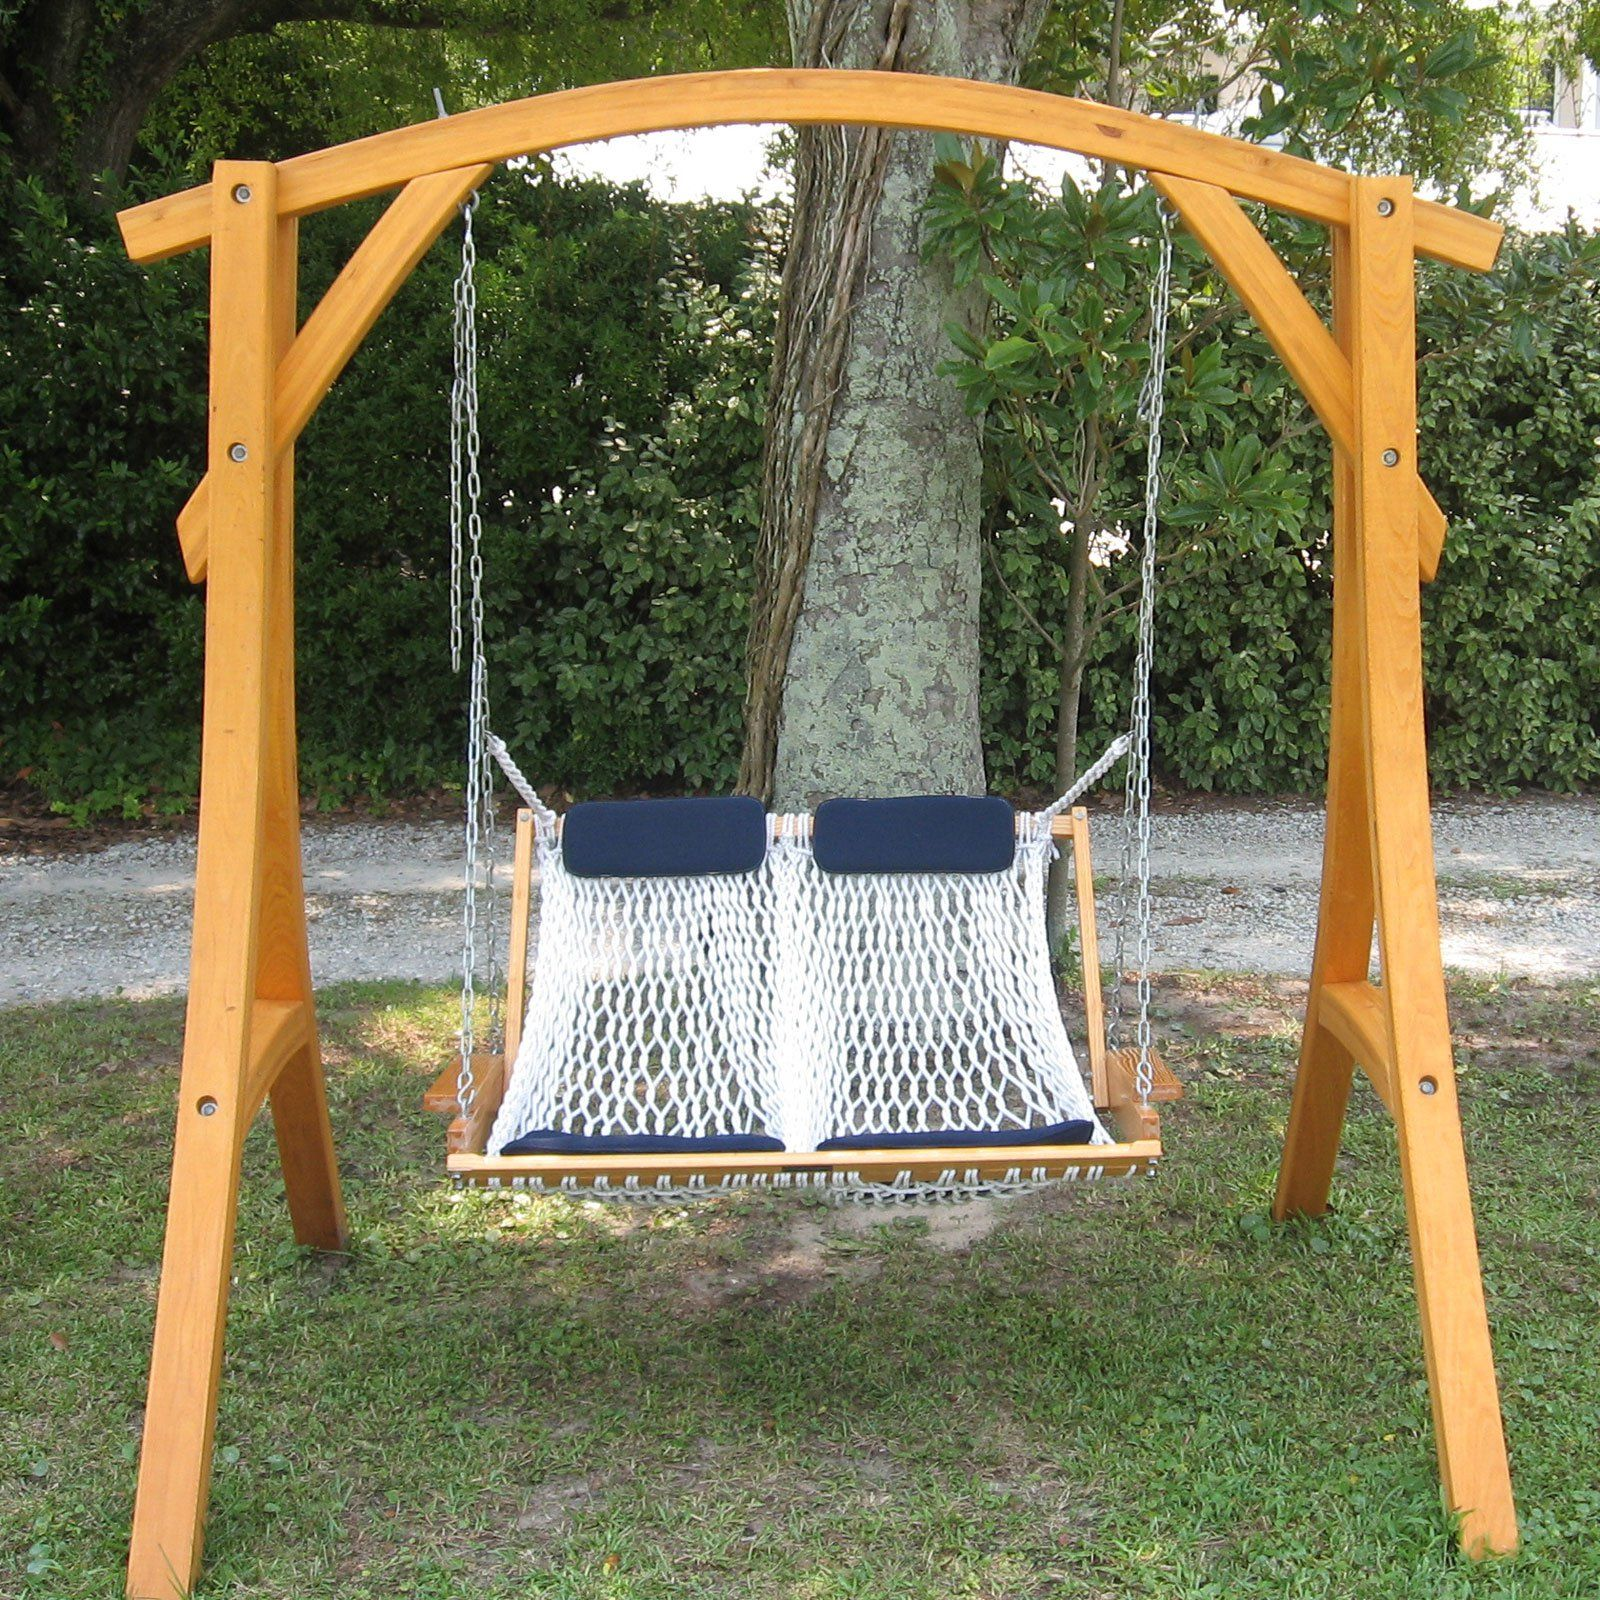 Exciting Hammock Chair Stand For Home Furniture Ideas: Hammock Swing Chair  Stand | Hammock Chair Stand | Paracord Hammock Chair